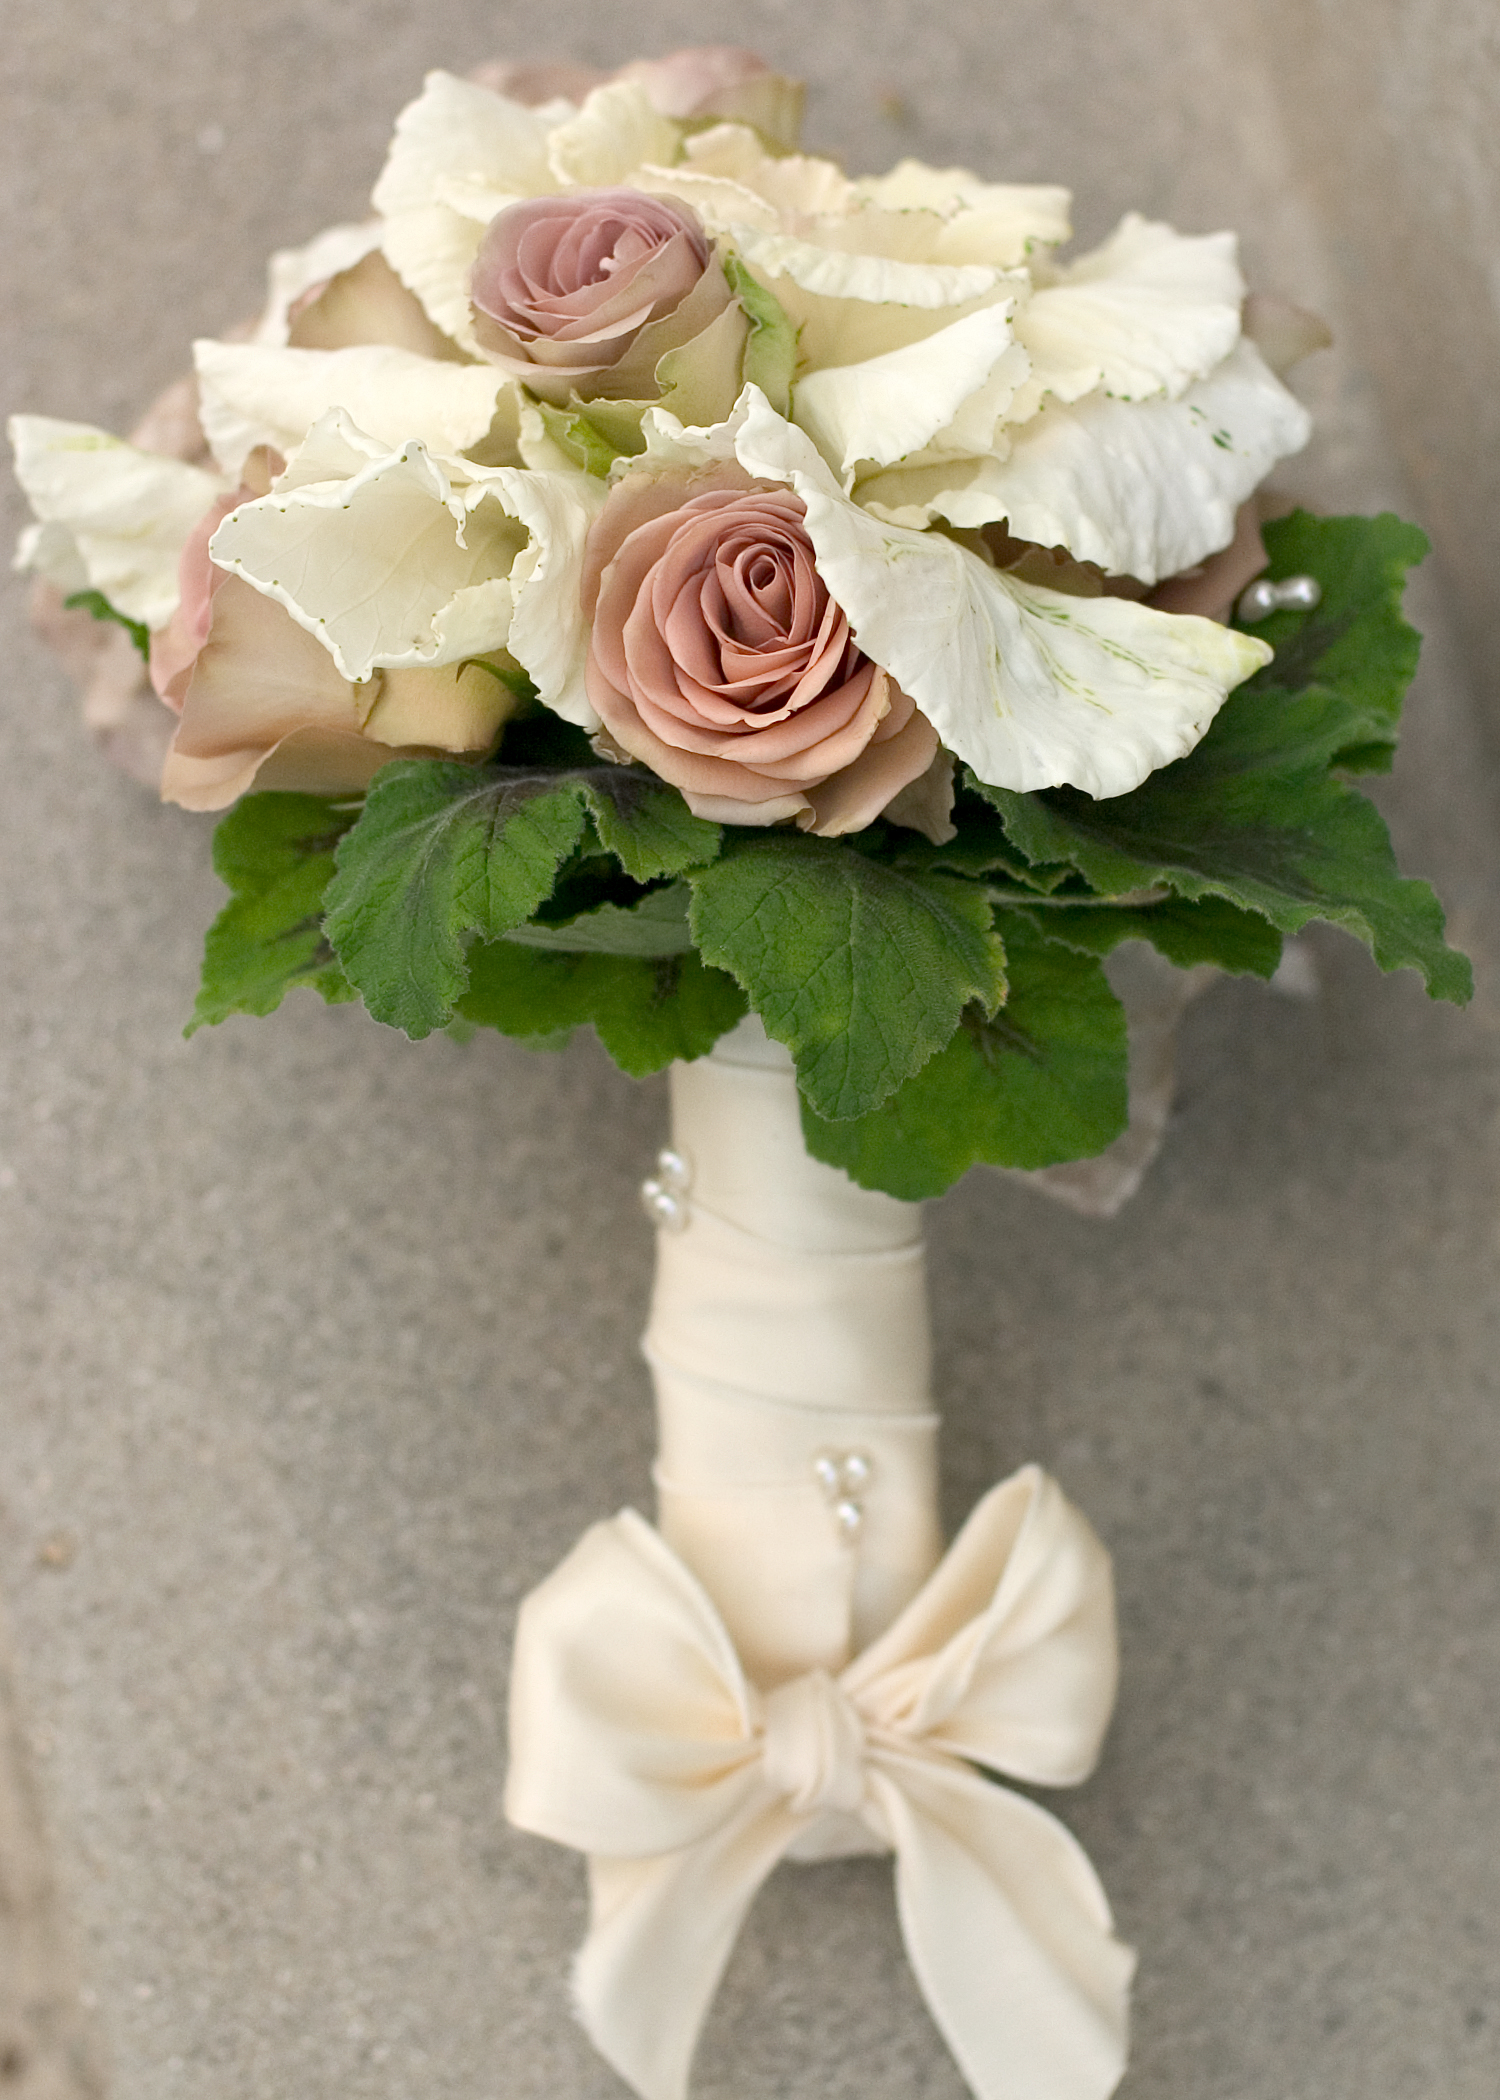 Day 11 Kale And Roses A Vintage Inspiration Floral Design By